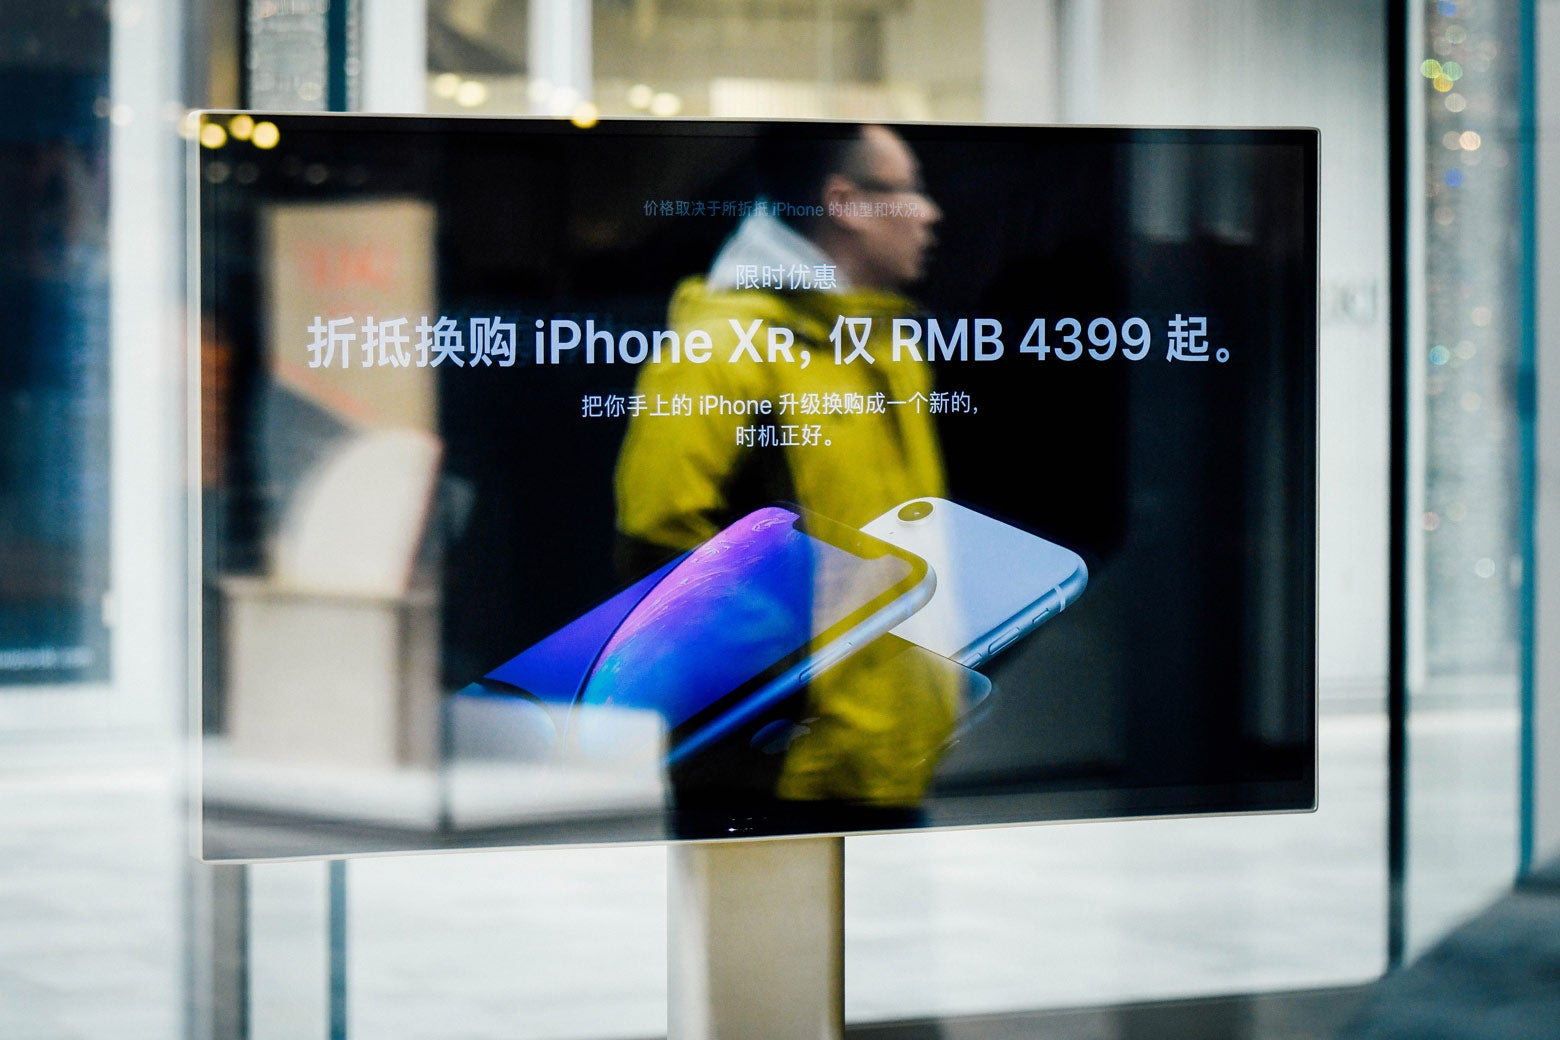 A man is reflected on a screen showing the iPhone XR at an Apple store in Beijing.